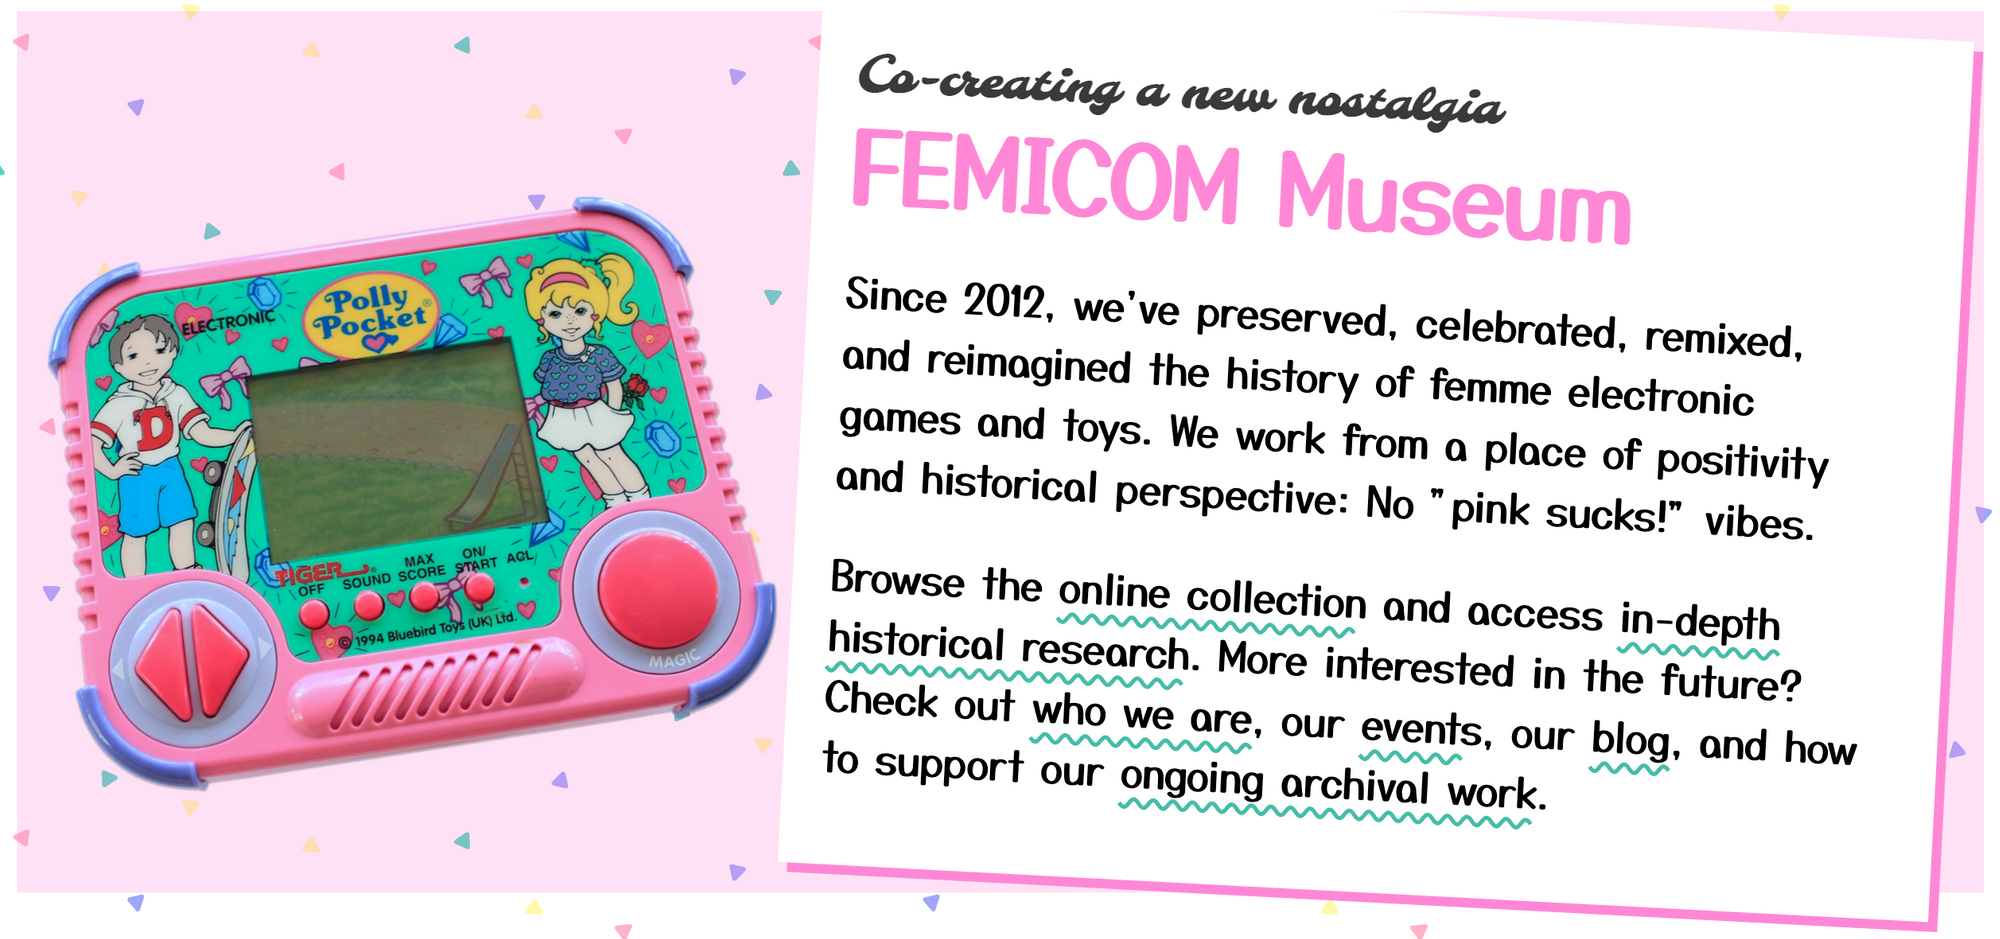 """A screenshot from the Femicom Museum website with a pink polly pocket handheld console, and the words: Co-creating a new nostalgia  FEMICOM Museum Since 2012, we've preserved, celebrated, remixed, and reimagined the history of femme electronic games and toys. We work from a place of positivity and historical perspective: No """"pink sucks!"""" vibes.  Browse the online collection and access in-depth historical research. More interested in the future? Check out who we are, our events, our blog, and how to support our ongoing archival work."""